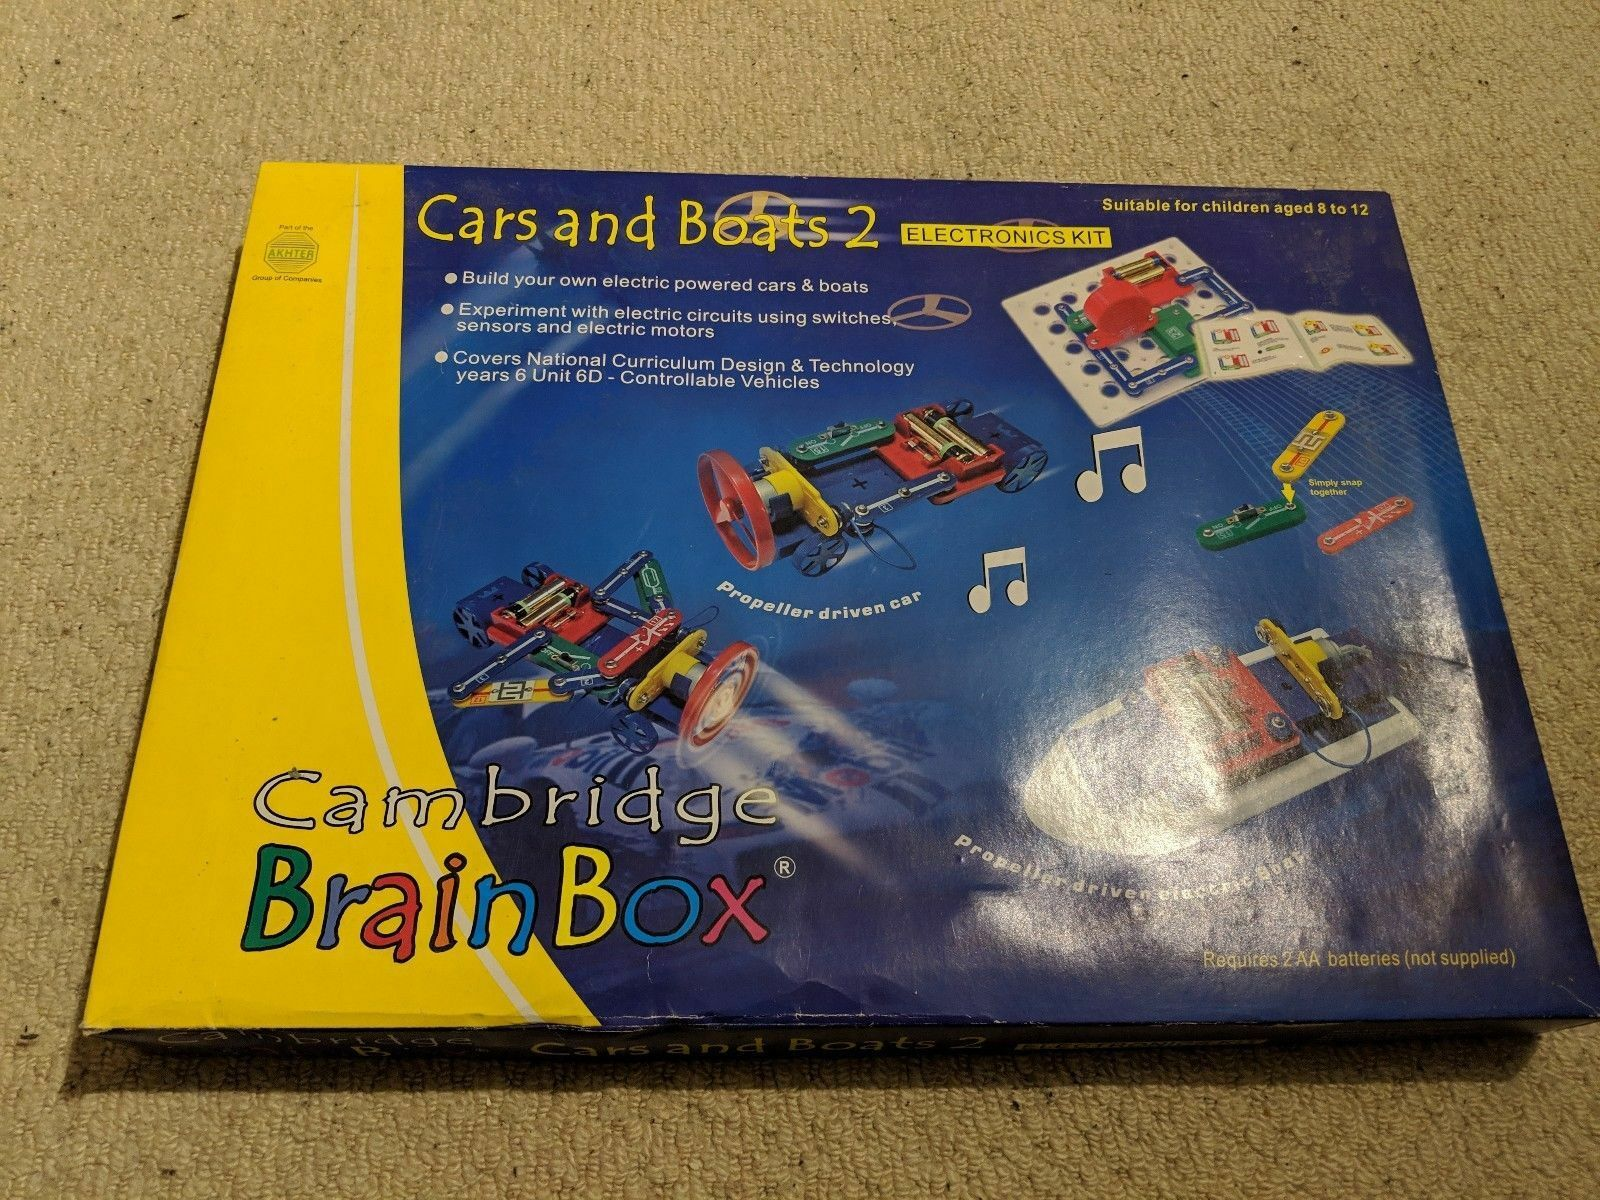 CAMBRIDGE BRAIN BOX, CARS AND BOATS 2, ELECTRONICS KIT